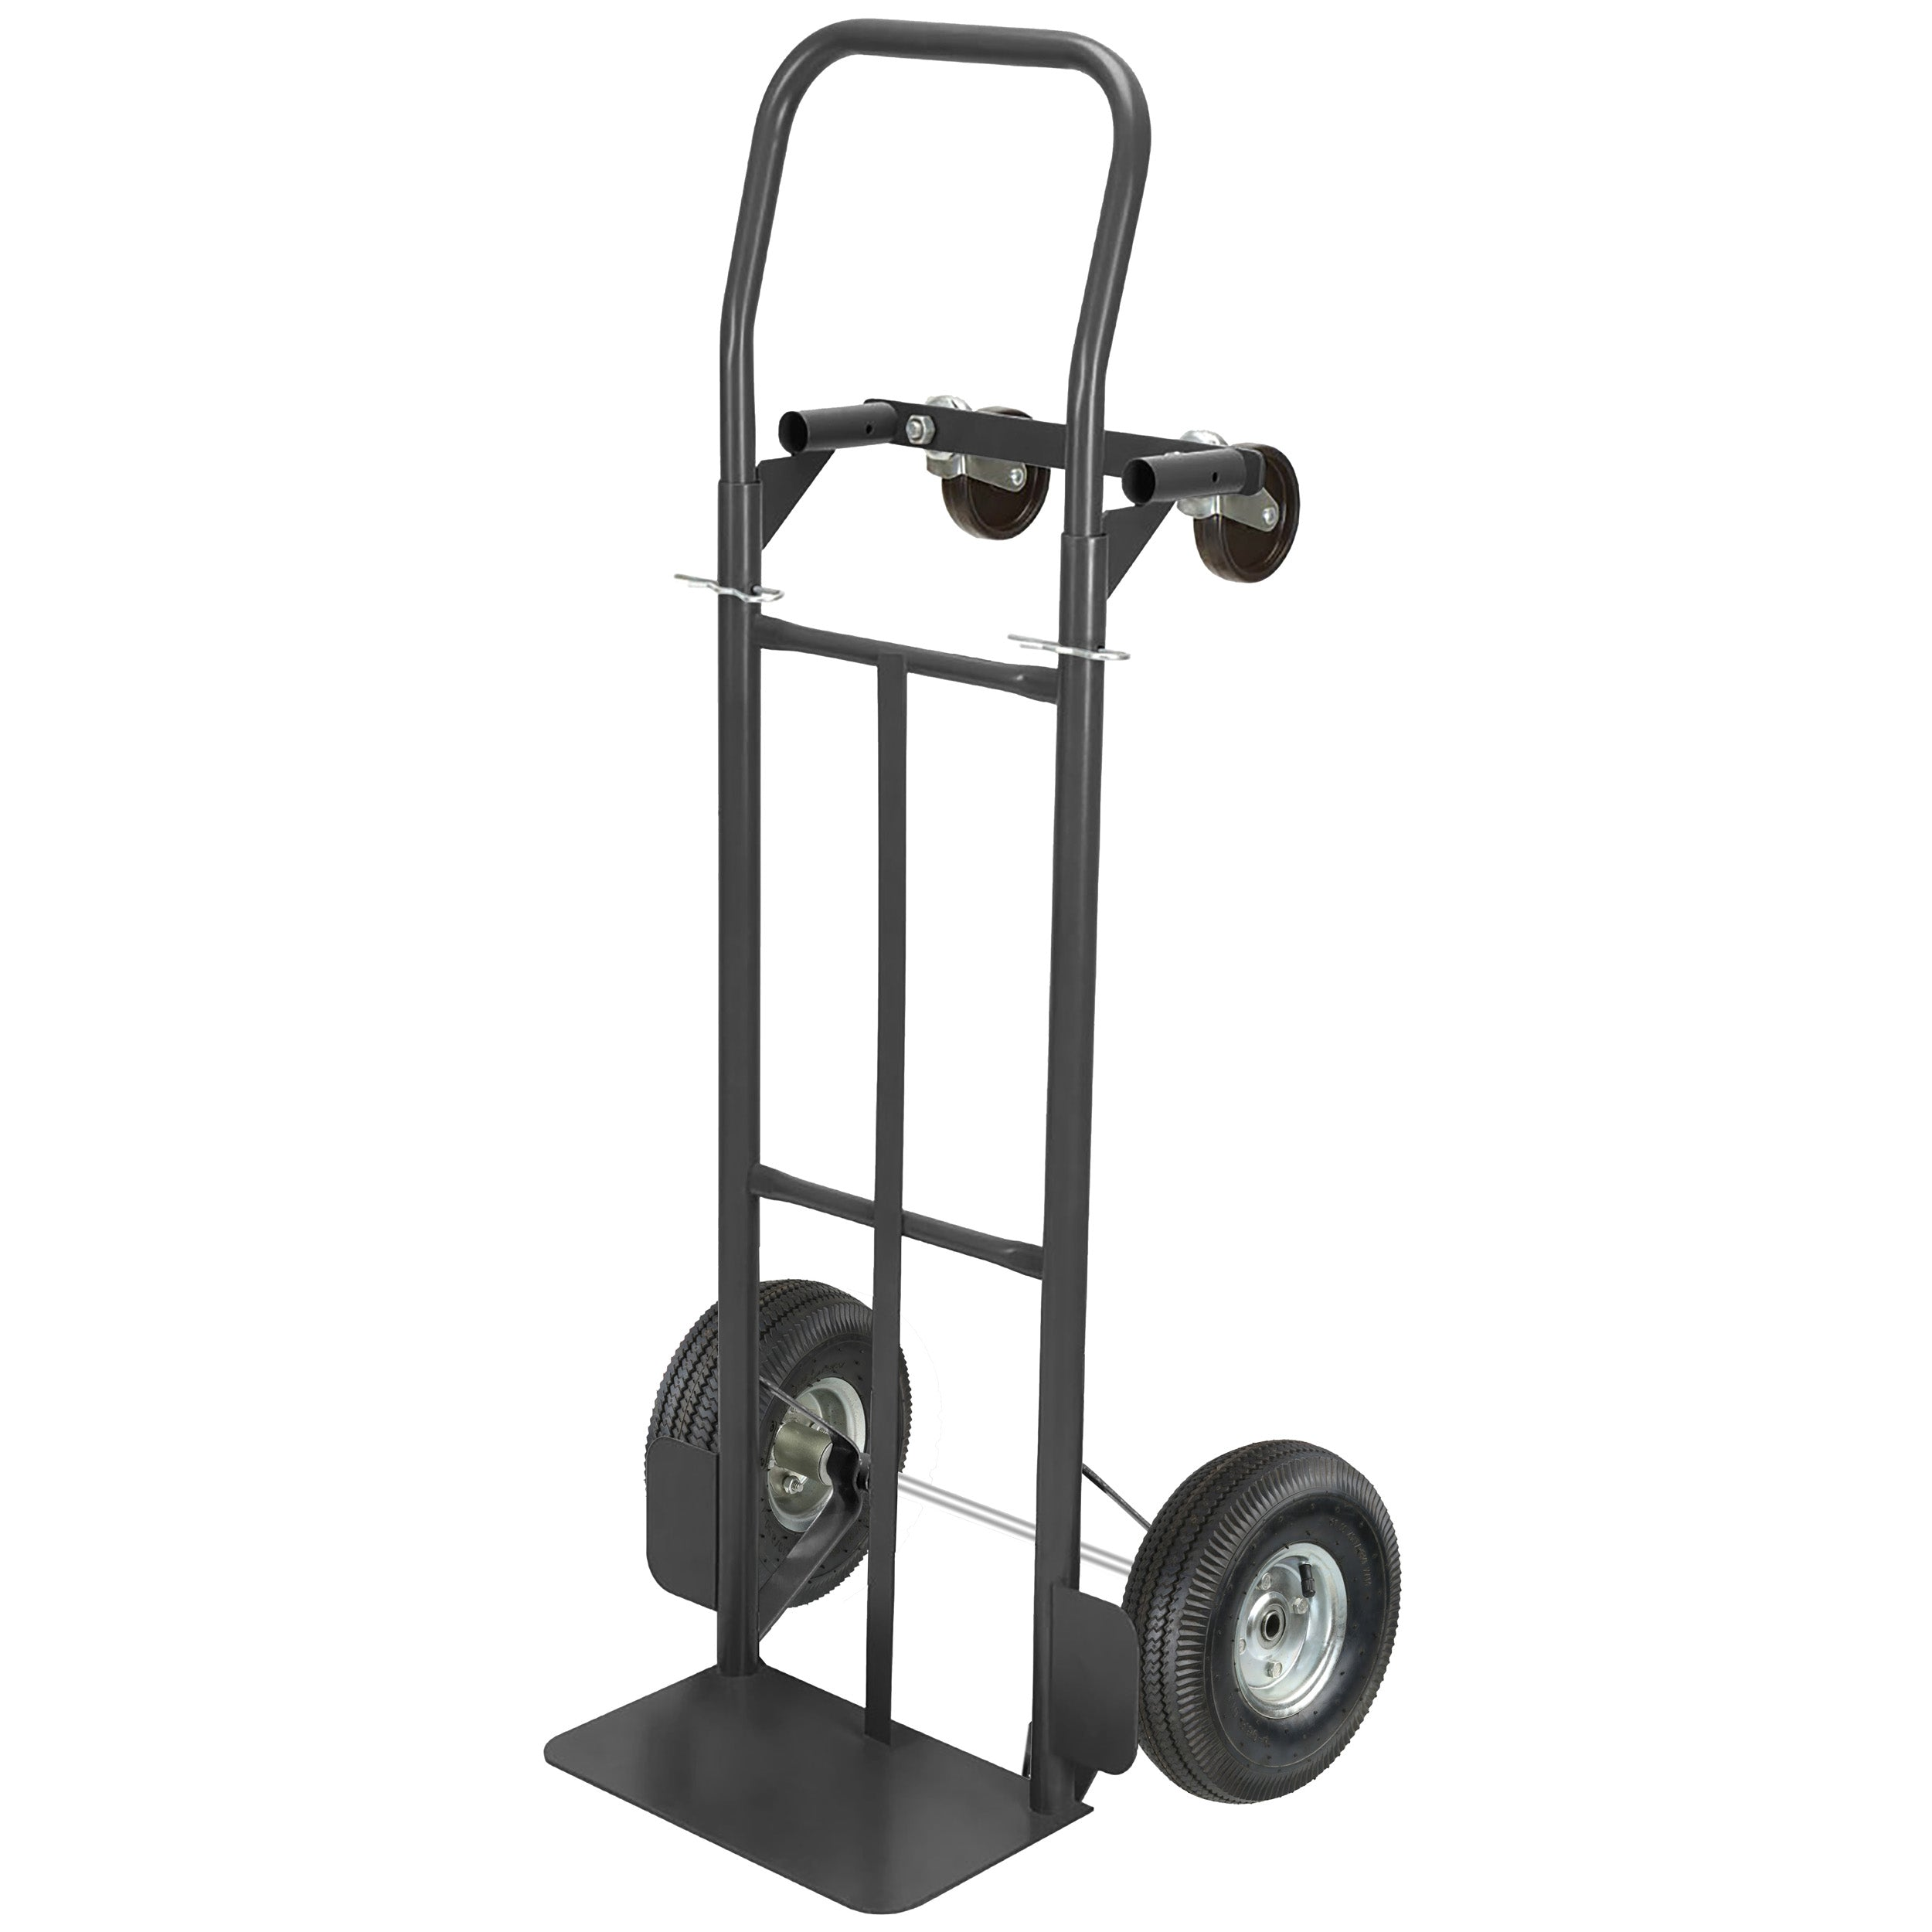 2-IN-1 HAND TRUCK